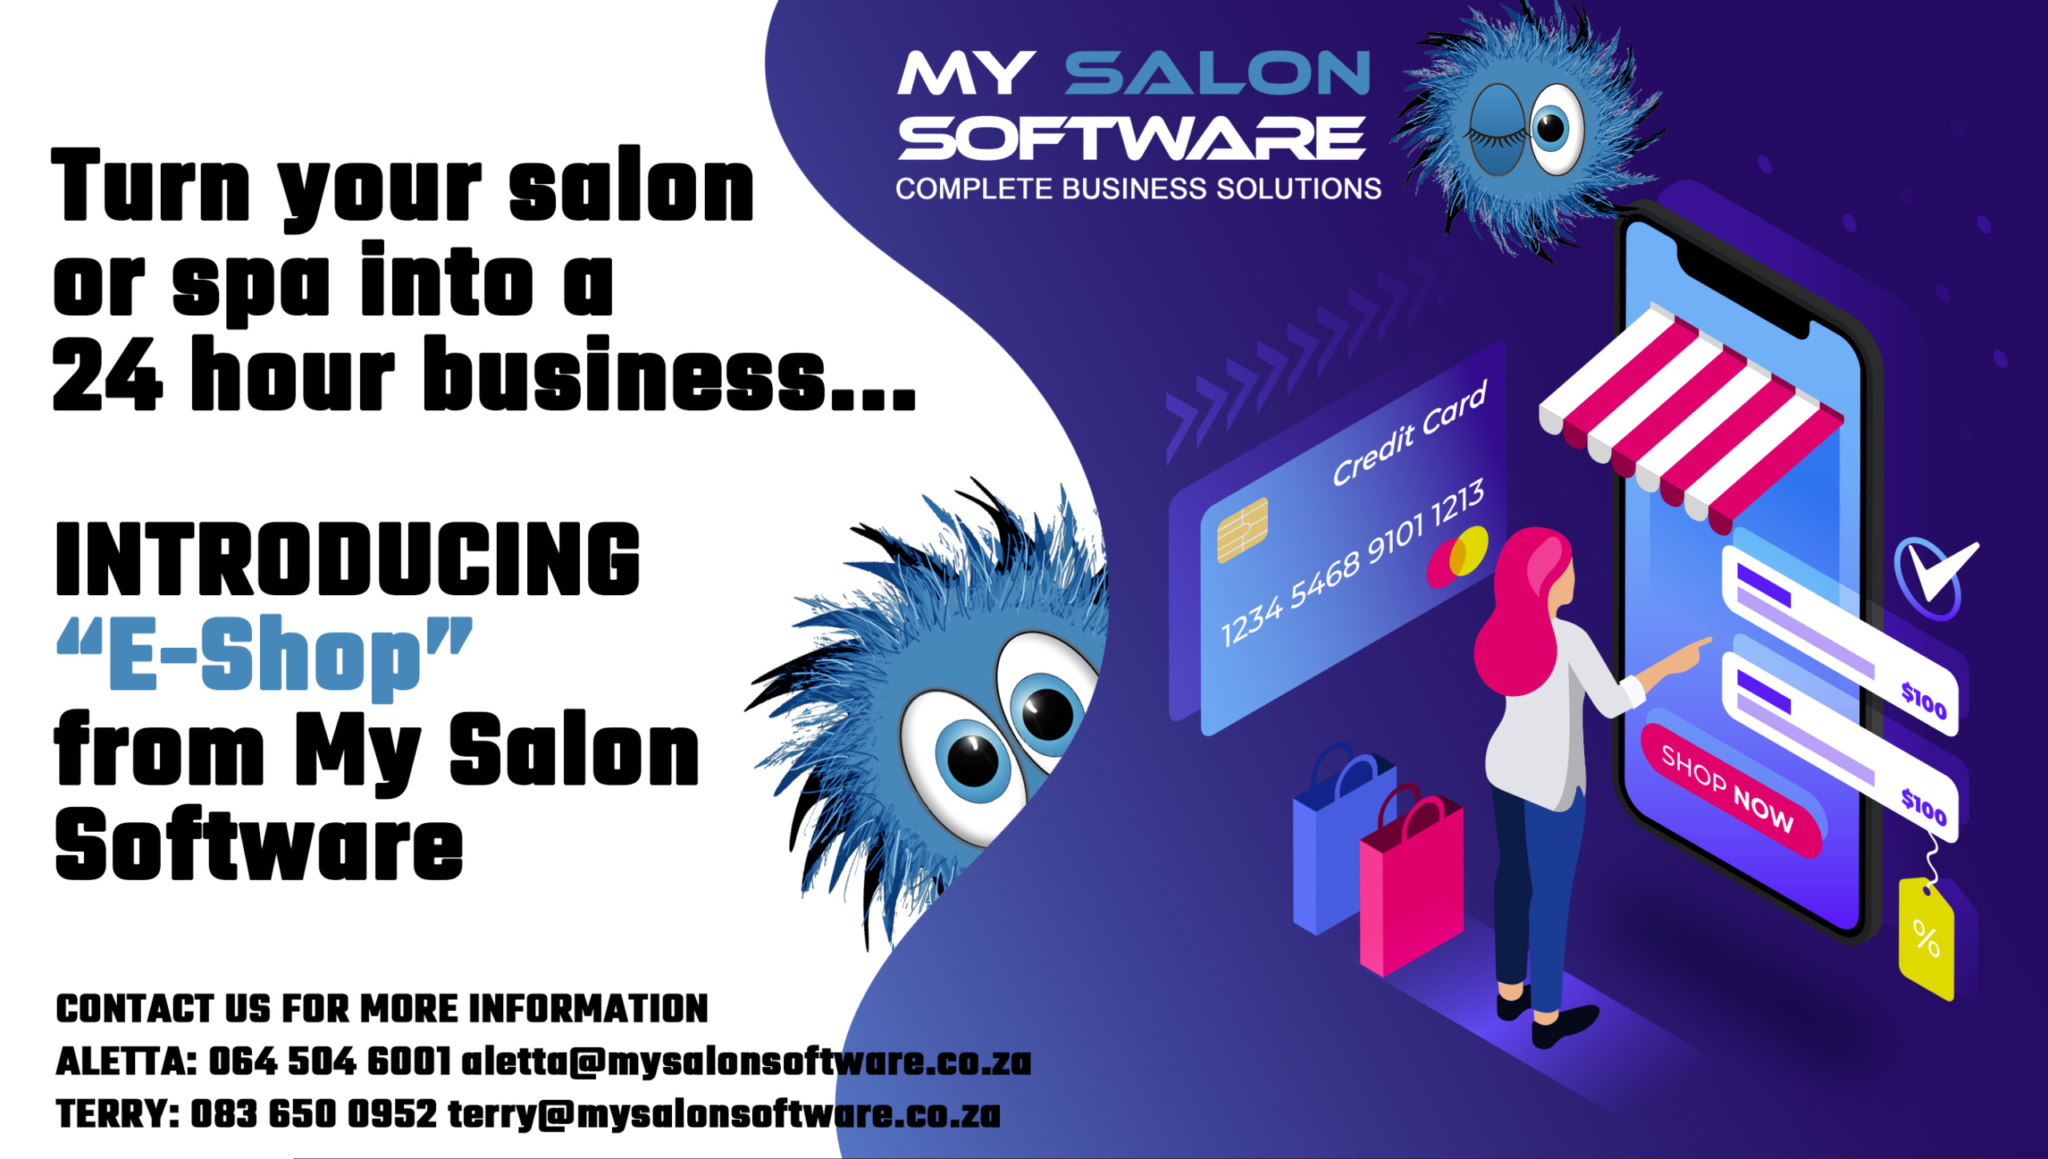 Turn your salon into a 24 hour business